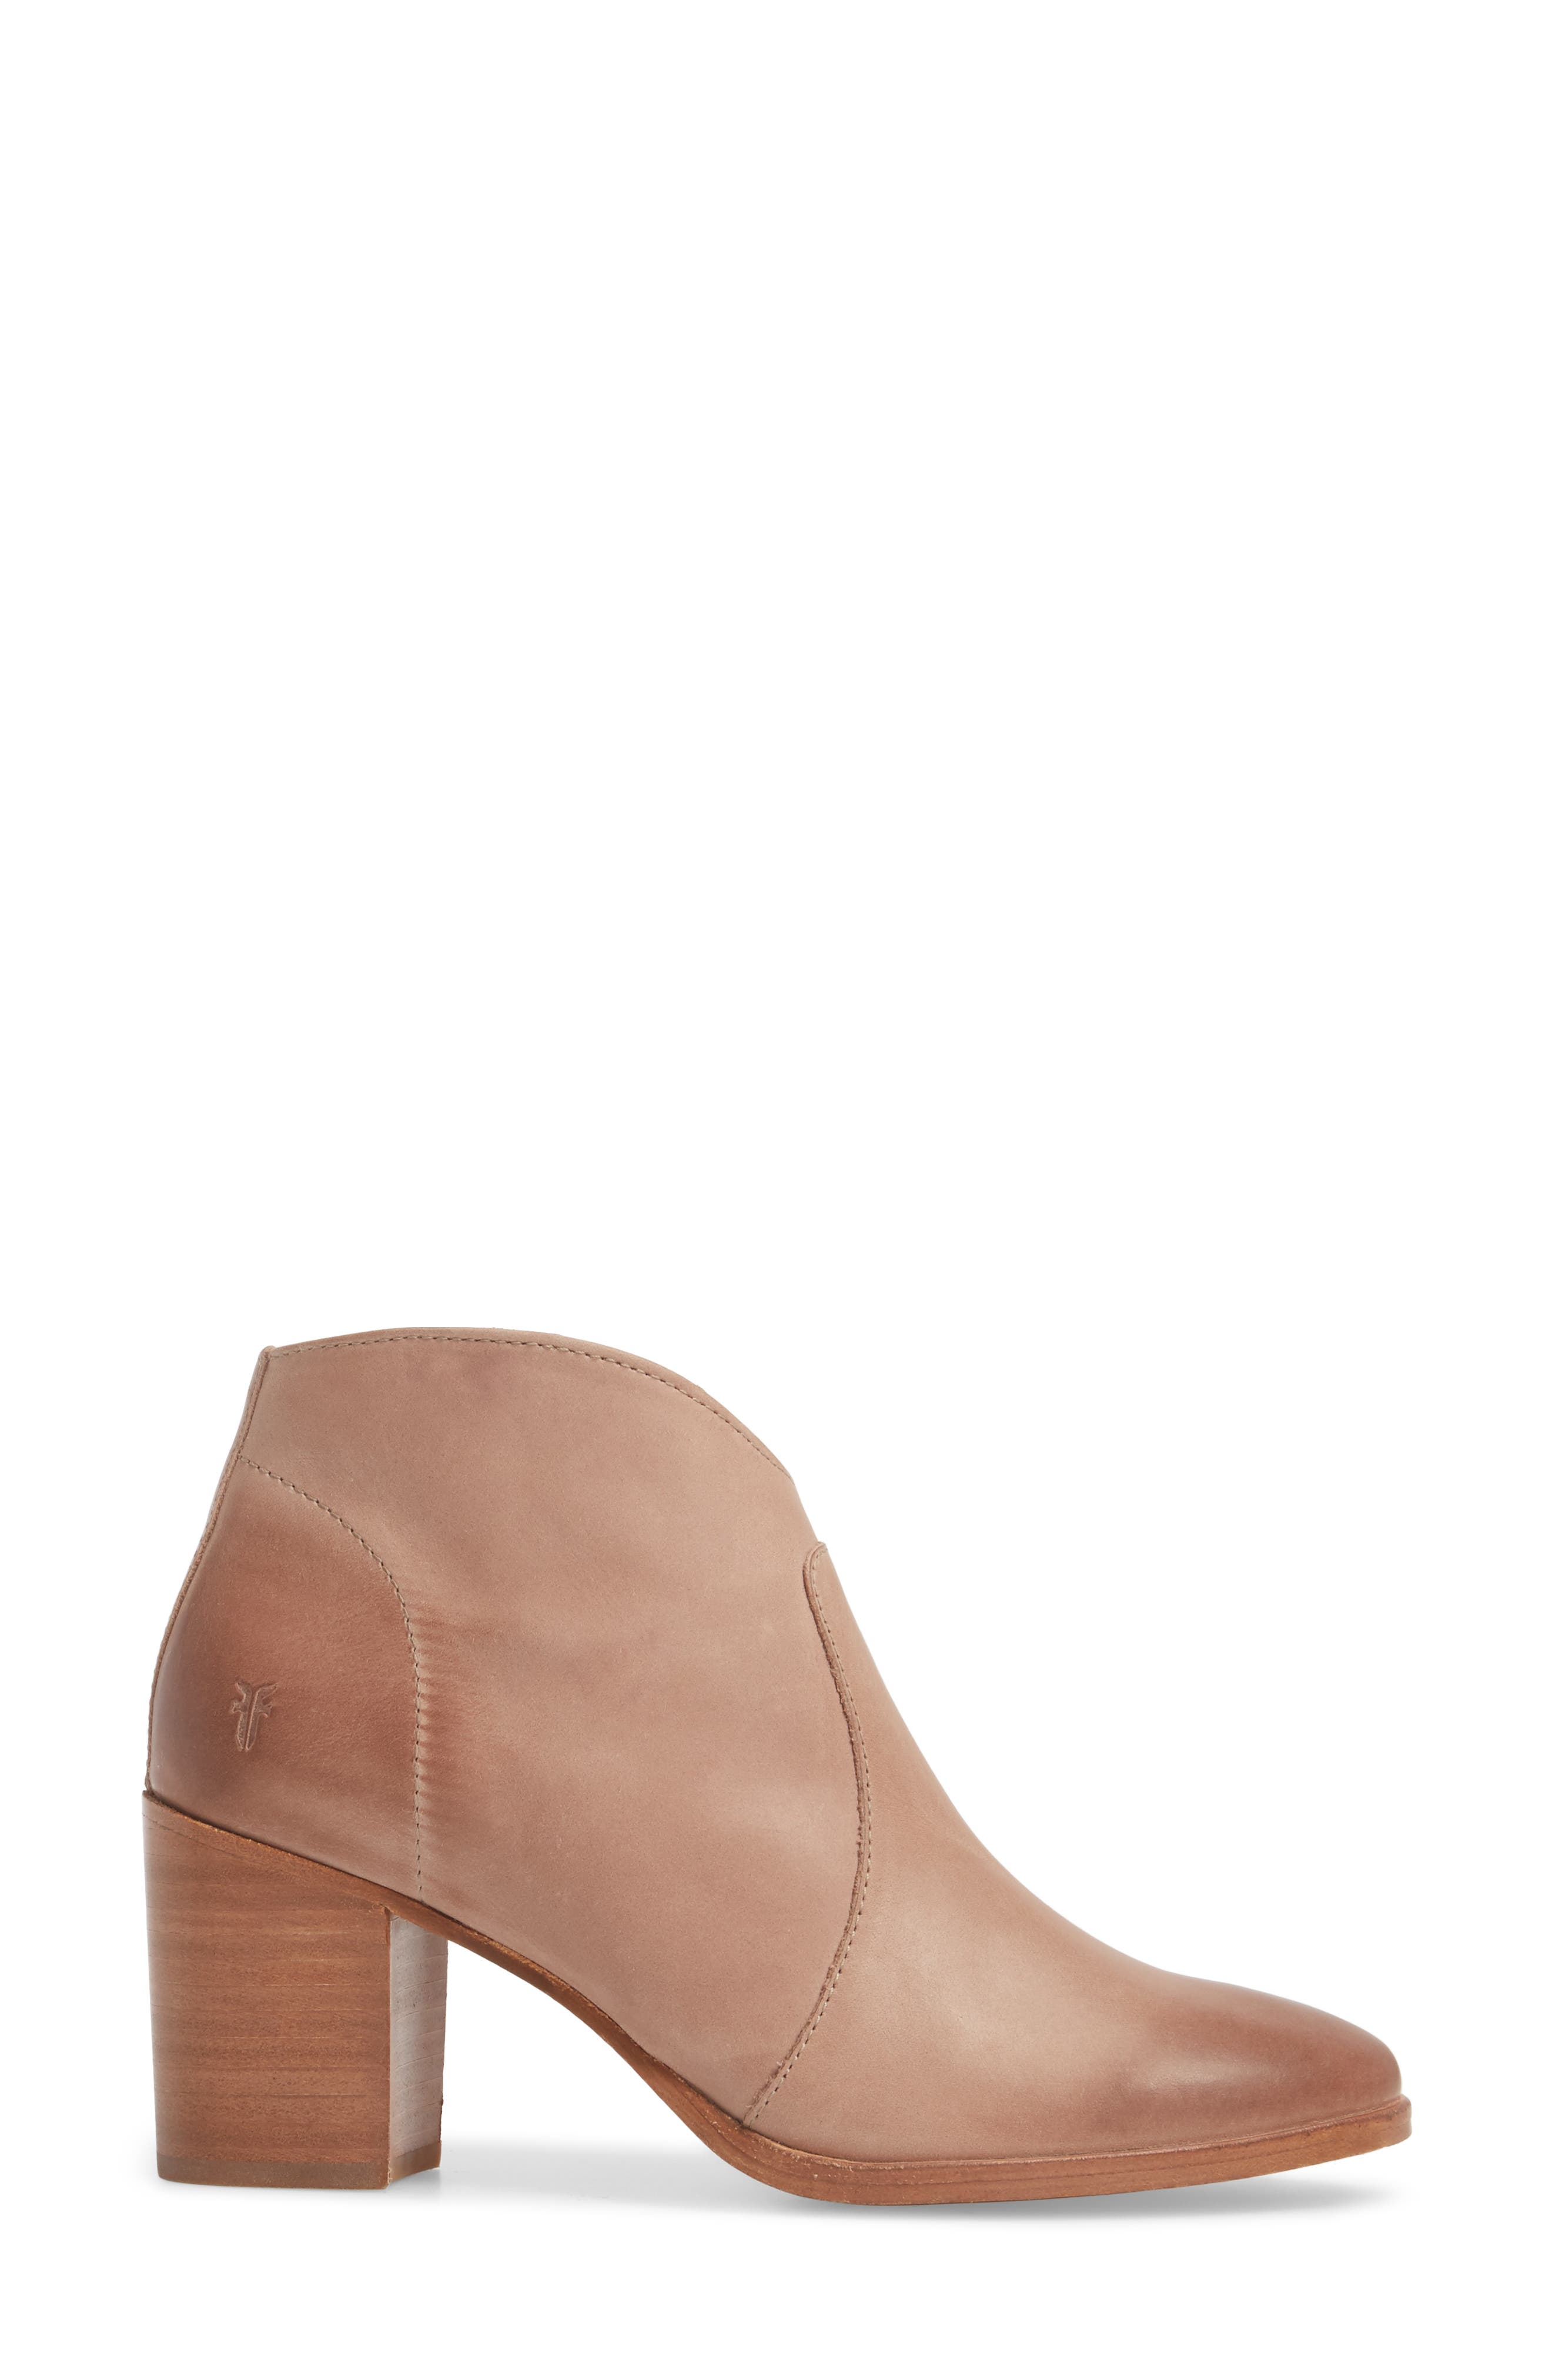 Nora Zip Bootie,                             Alternate thumbnail 3, color,                             Dusty Rose